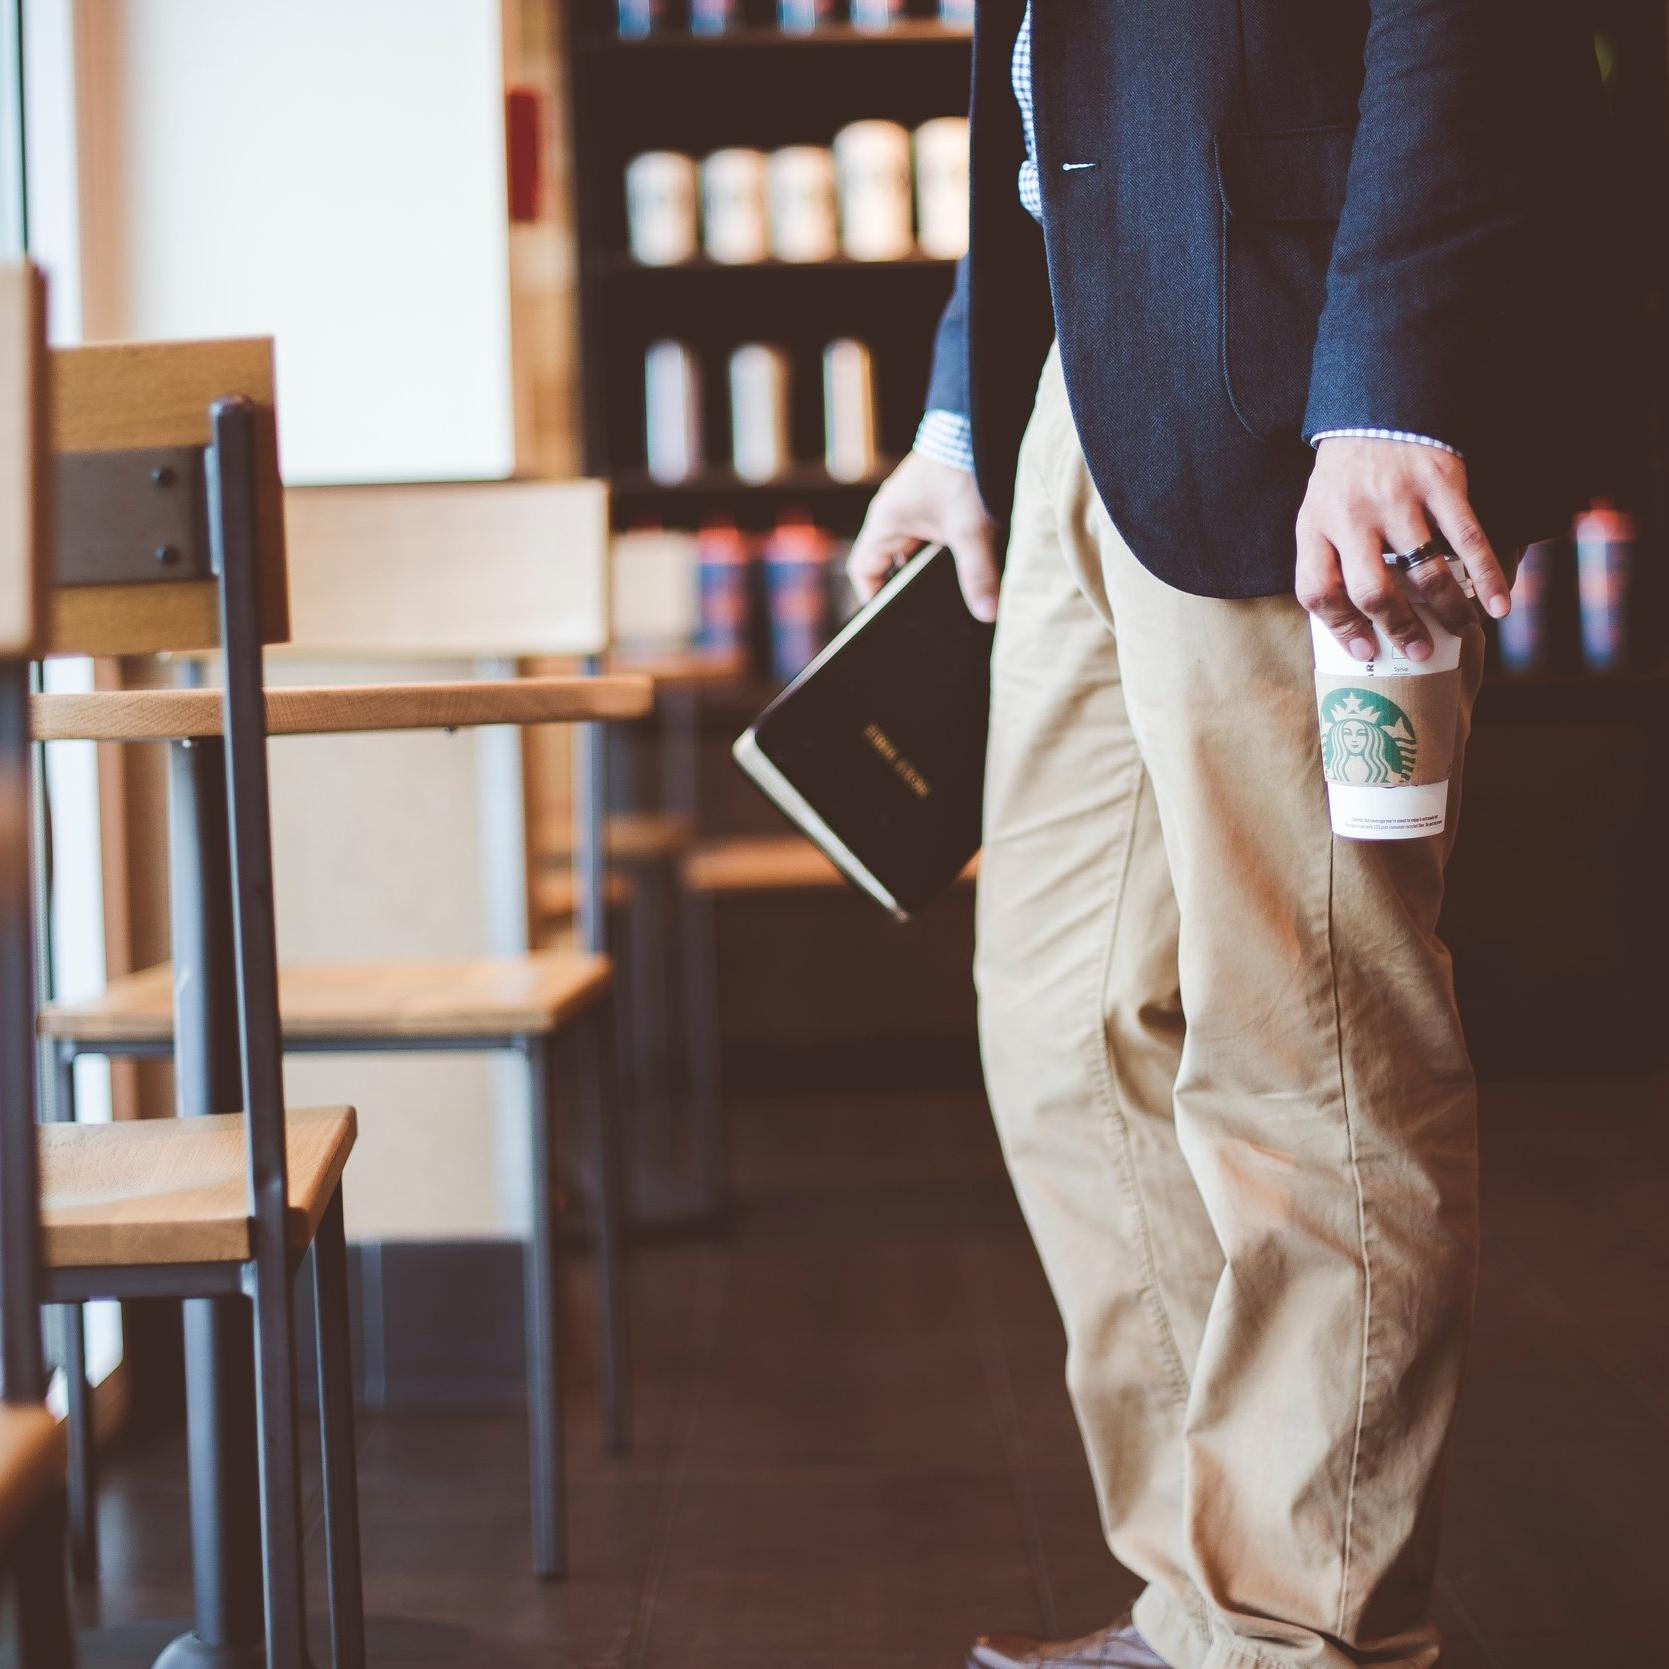 Men's Prayer at Starbucks